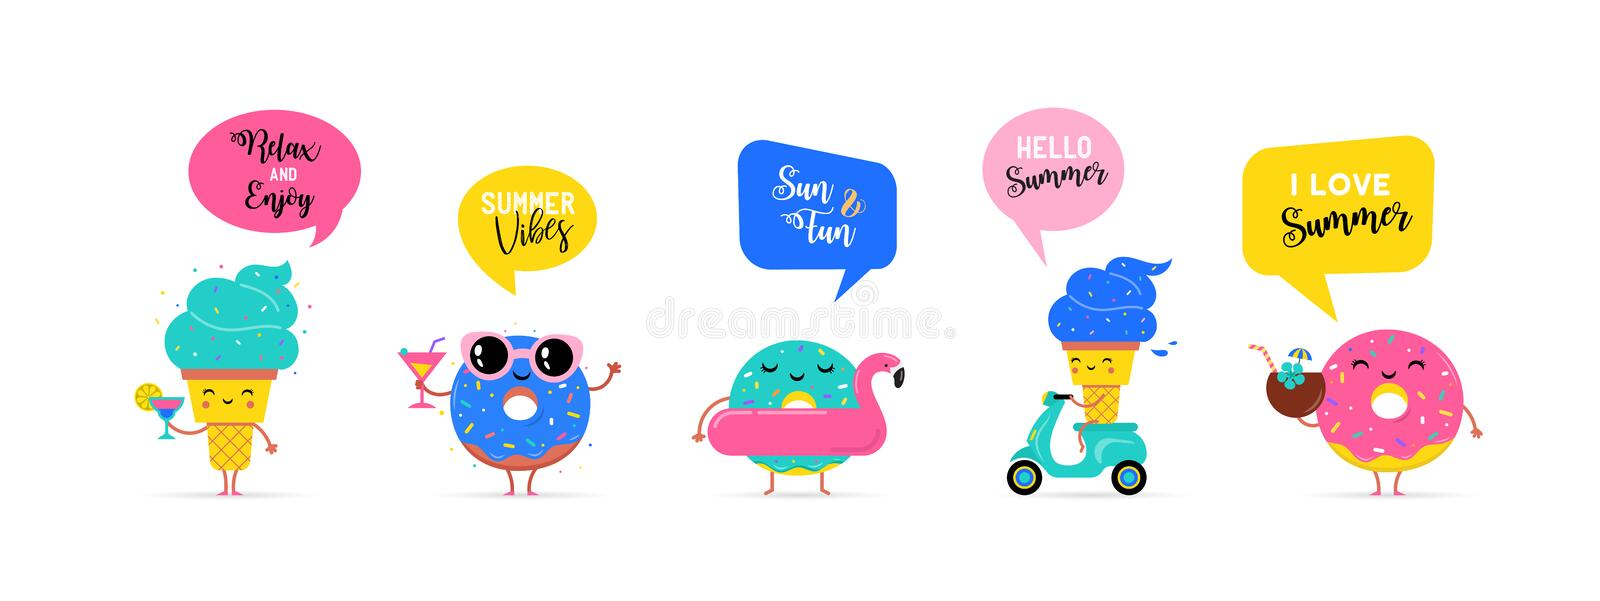 Sweet summer - cute ice cream, watermelon and donuts characters make fun. Pool, sea and beach summer activities concept vector illustrations vector illustration